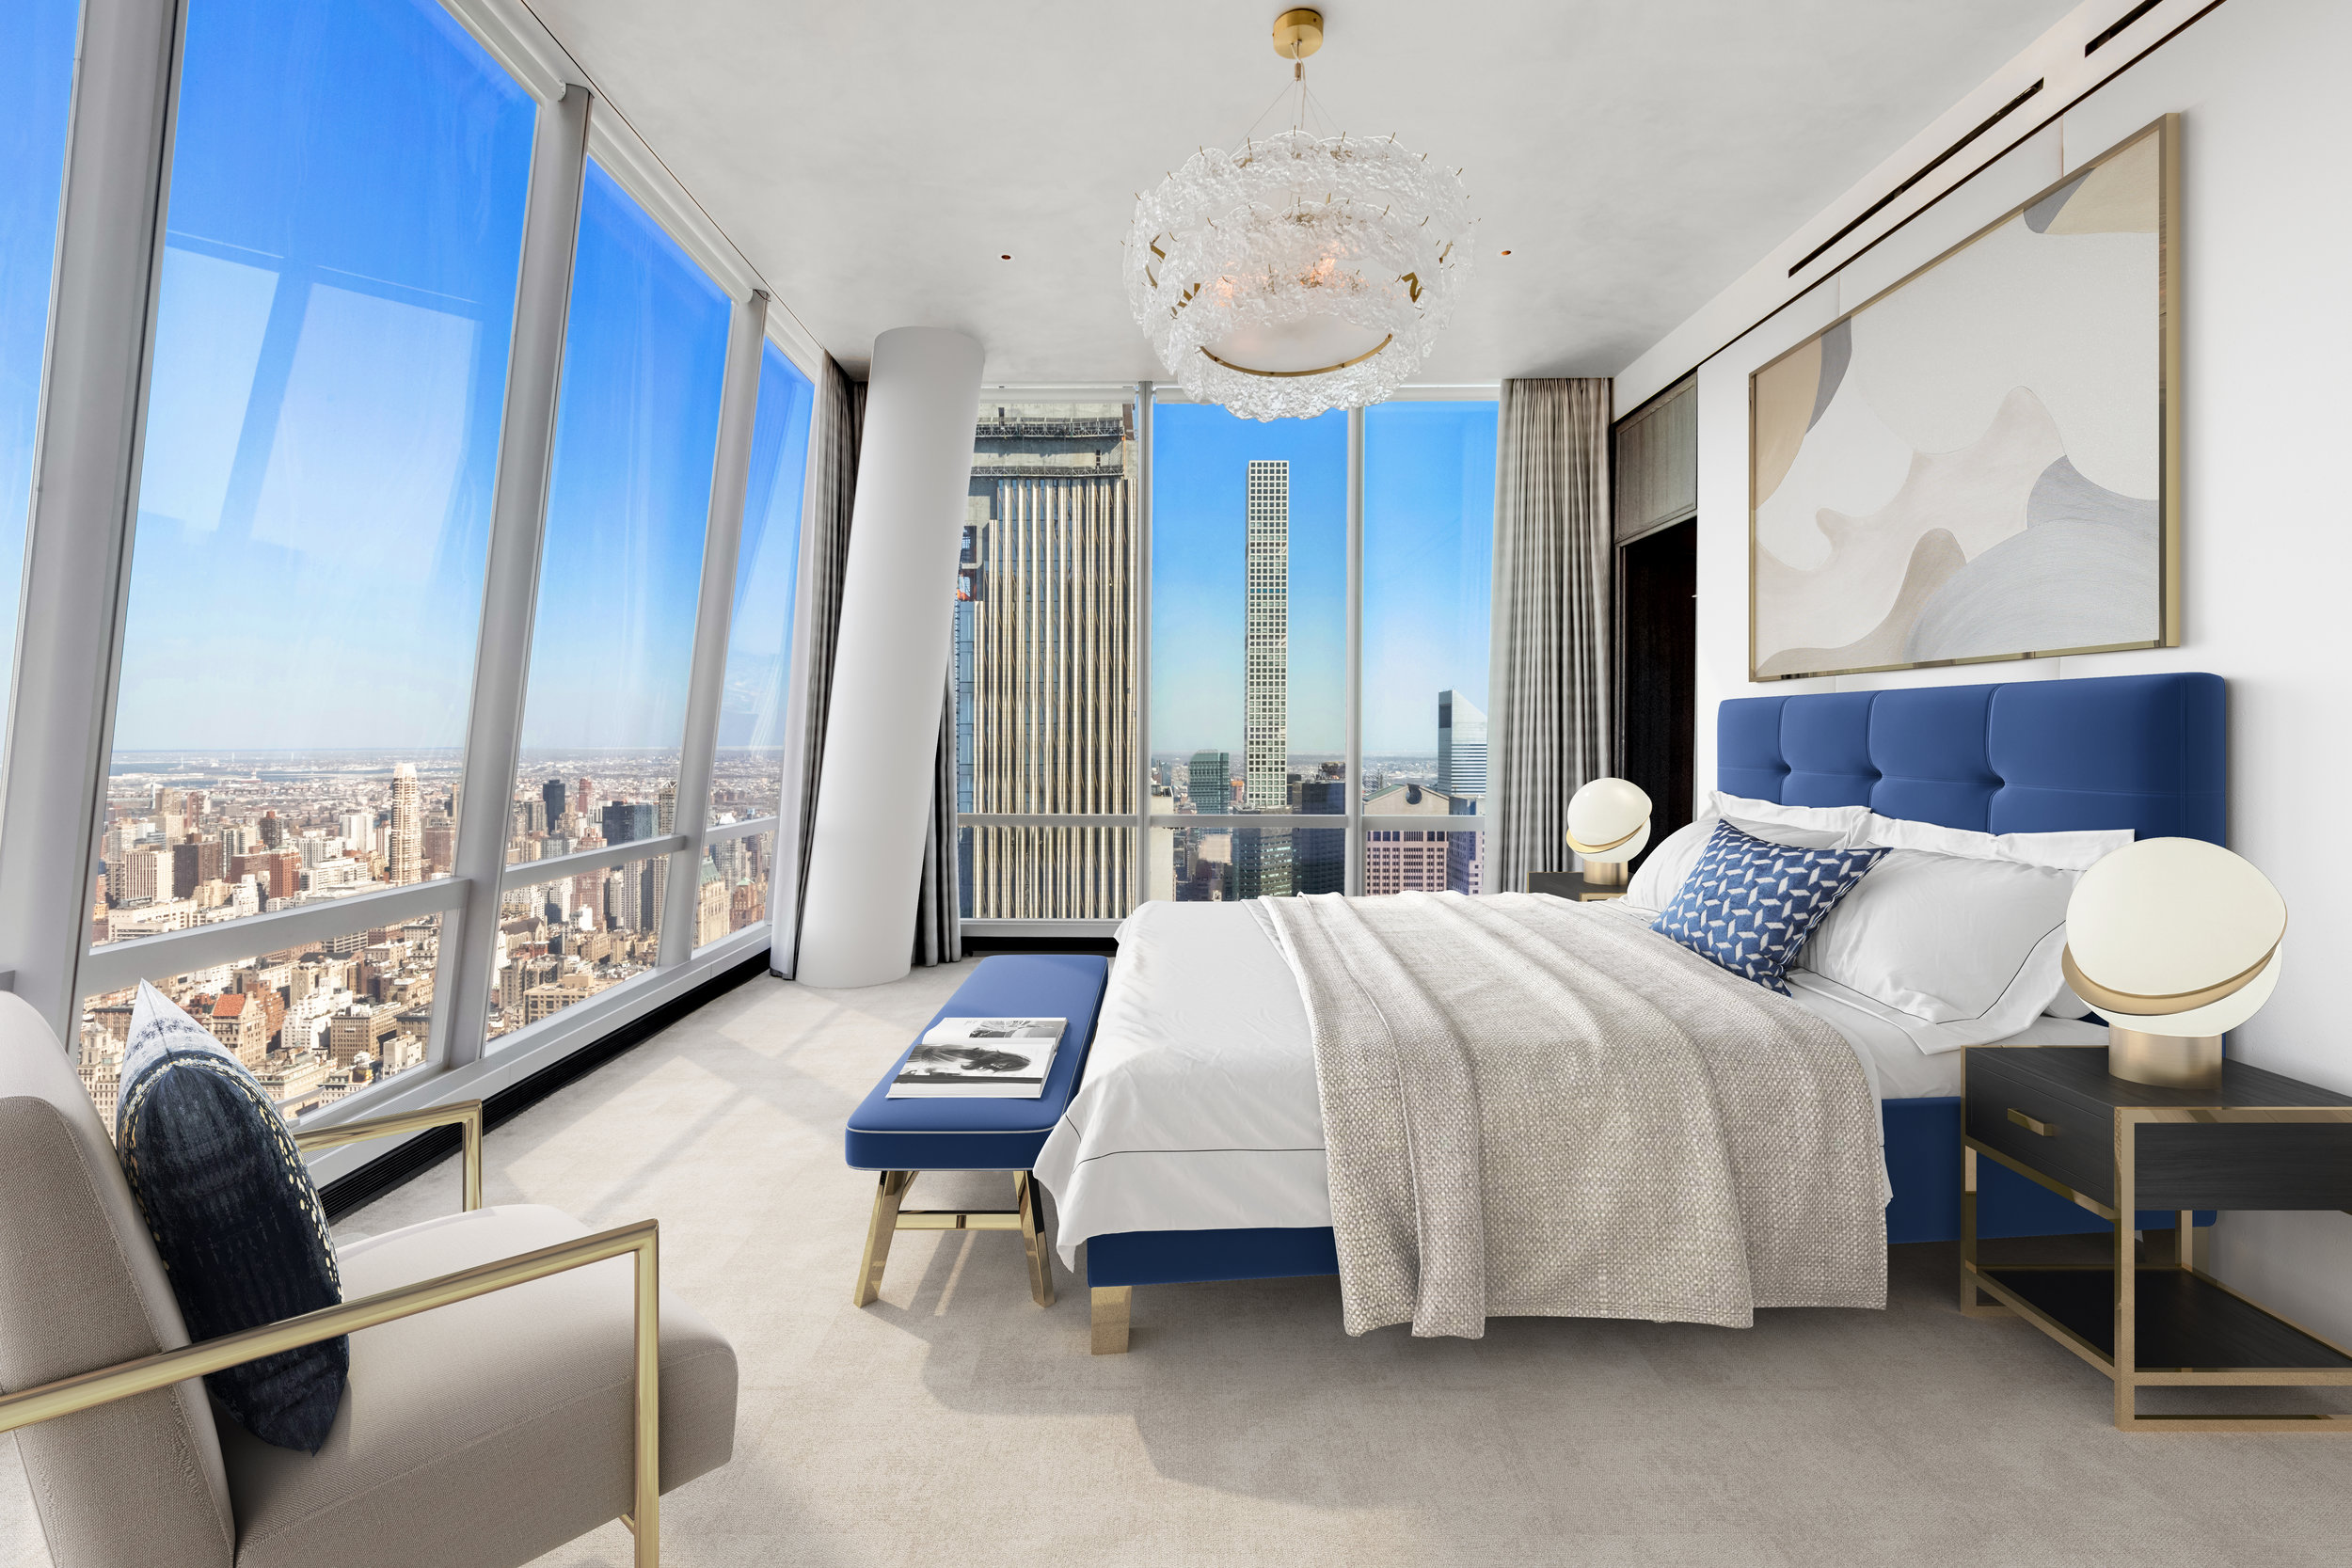 One57157West57thSt67B-CentralParkSouthNewYork_Anthony_Barillo_DouglasElliman_Photography_76924726_high_res.jpg